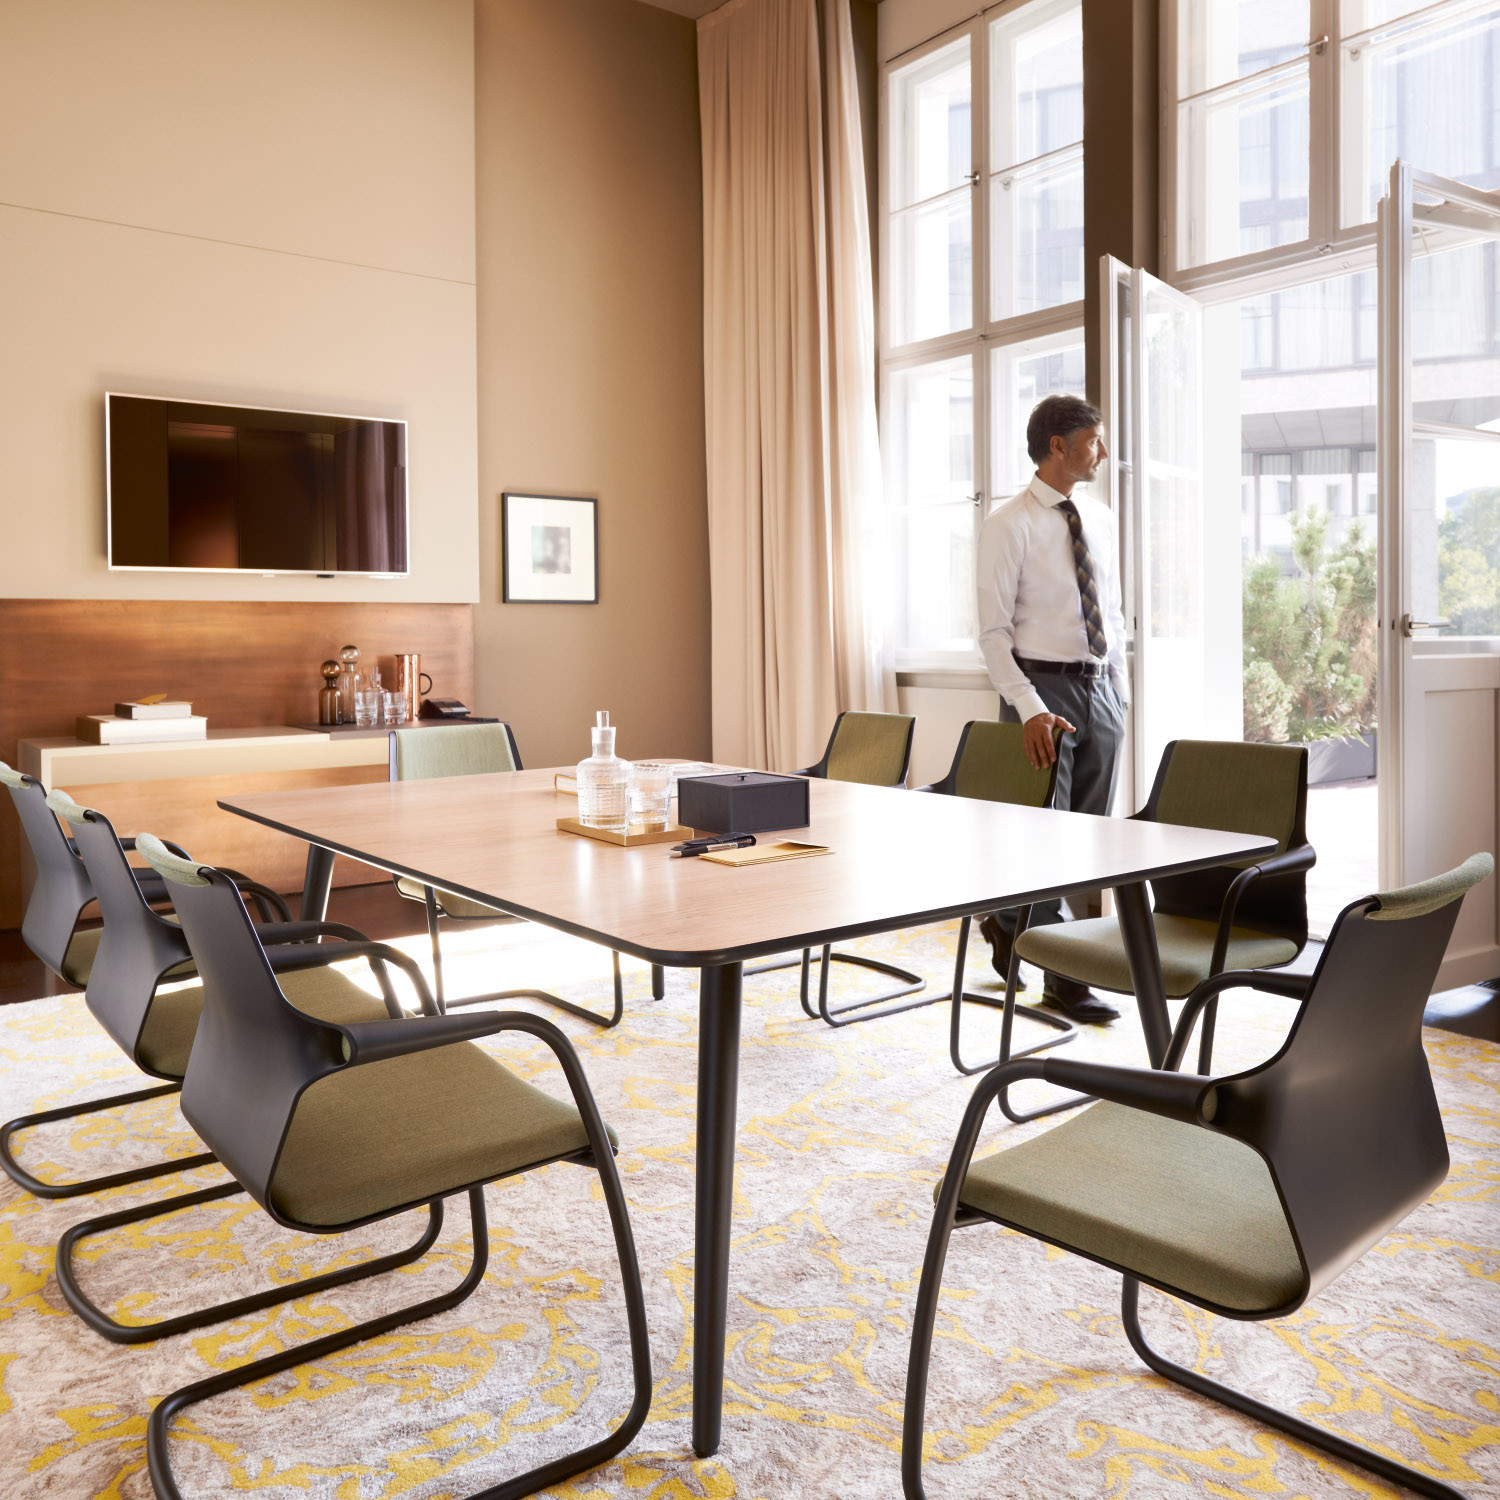 Allright Cantilever Meeting Chairs by Sedus